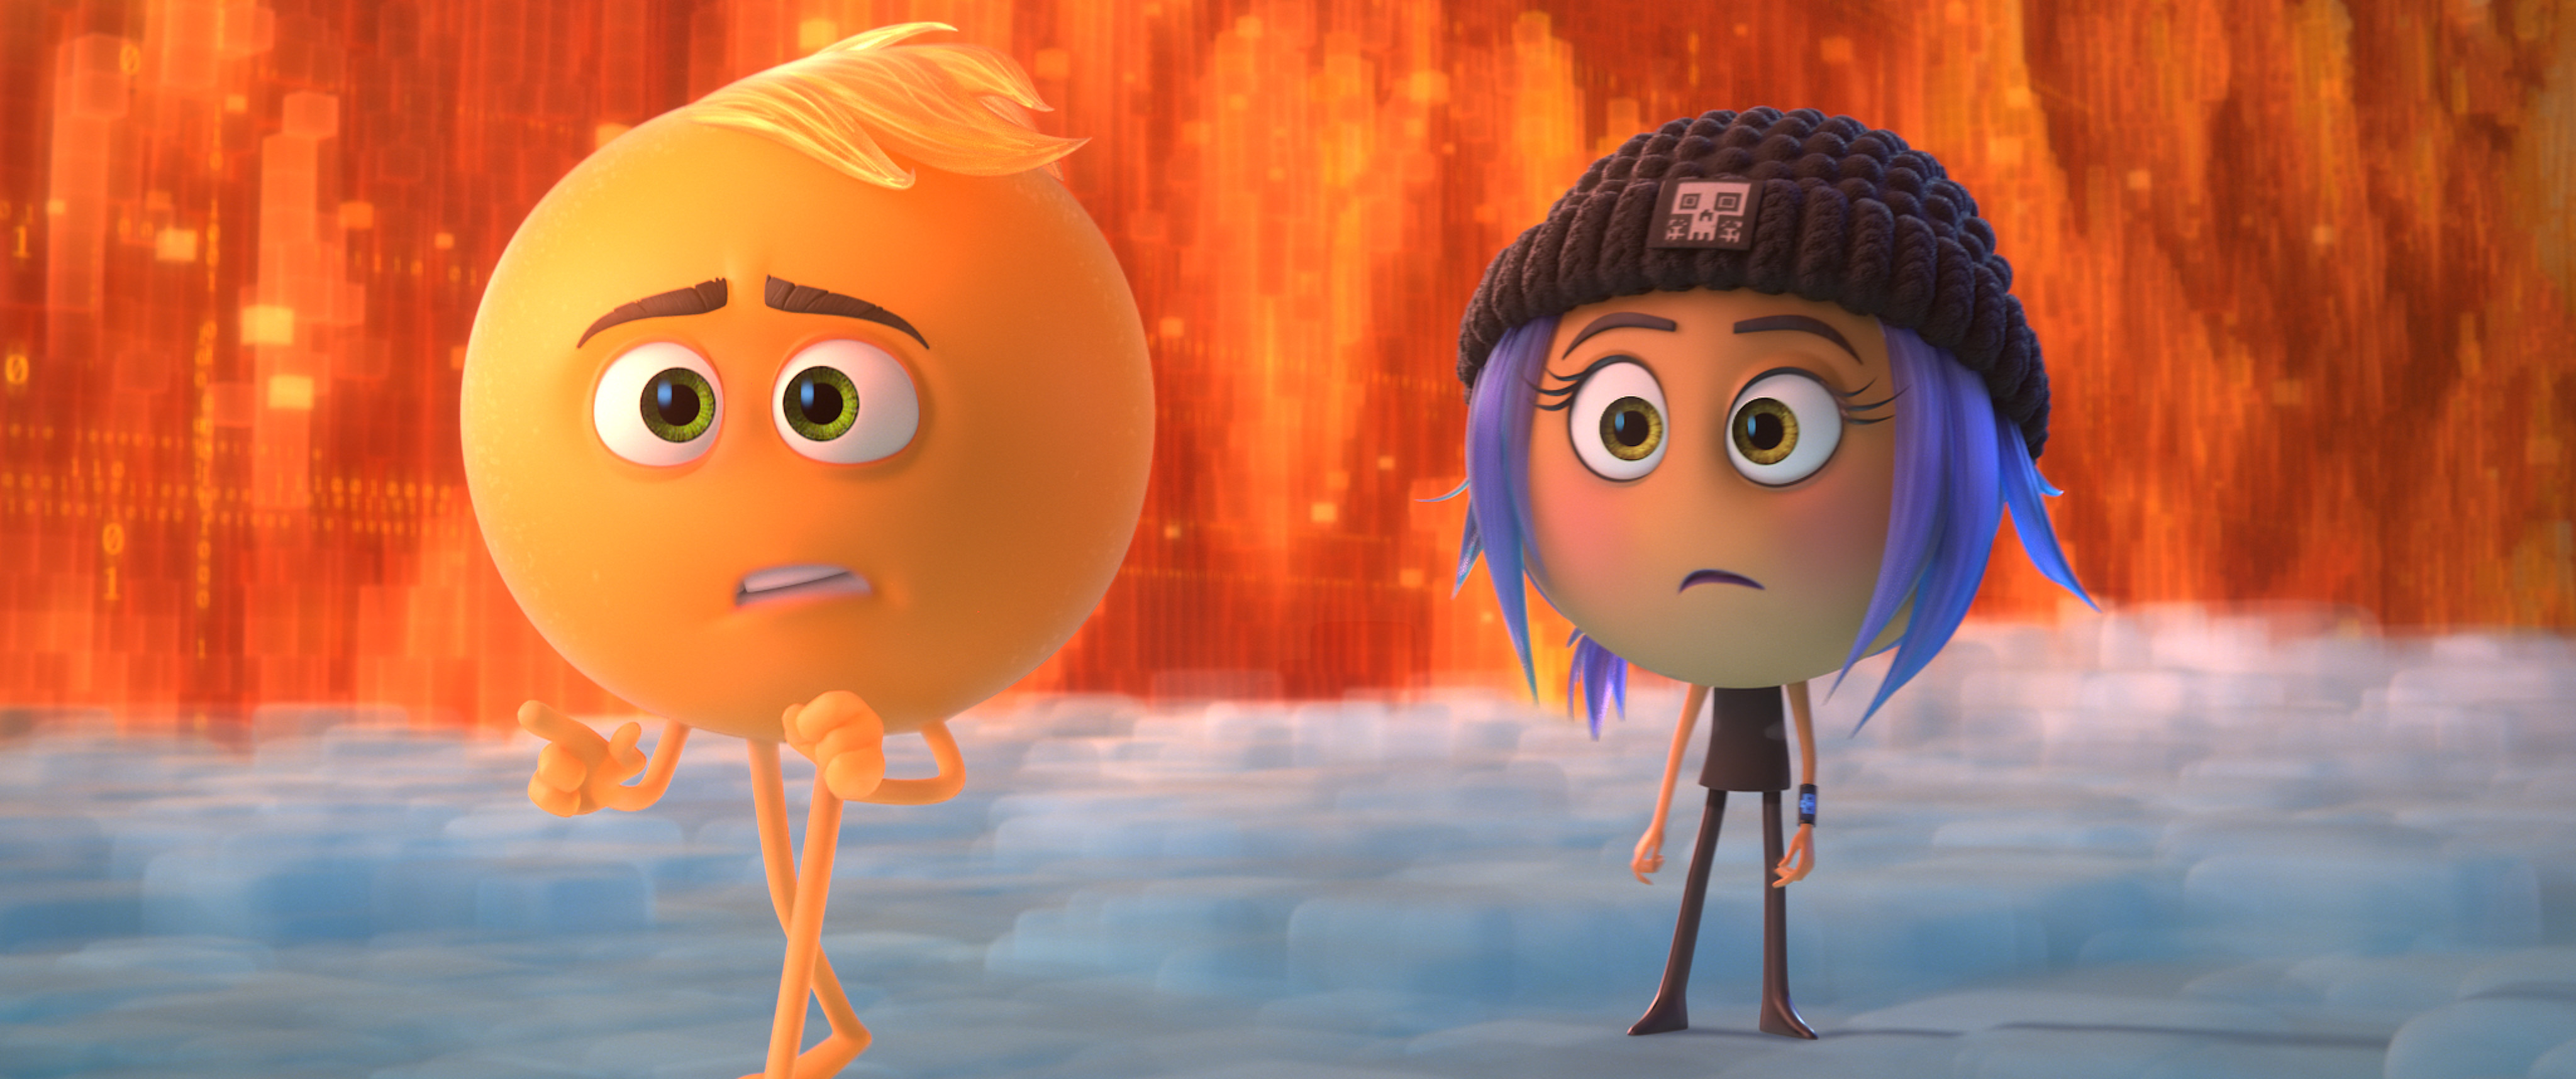 The Emoji Movie Gallery 2